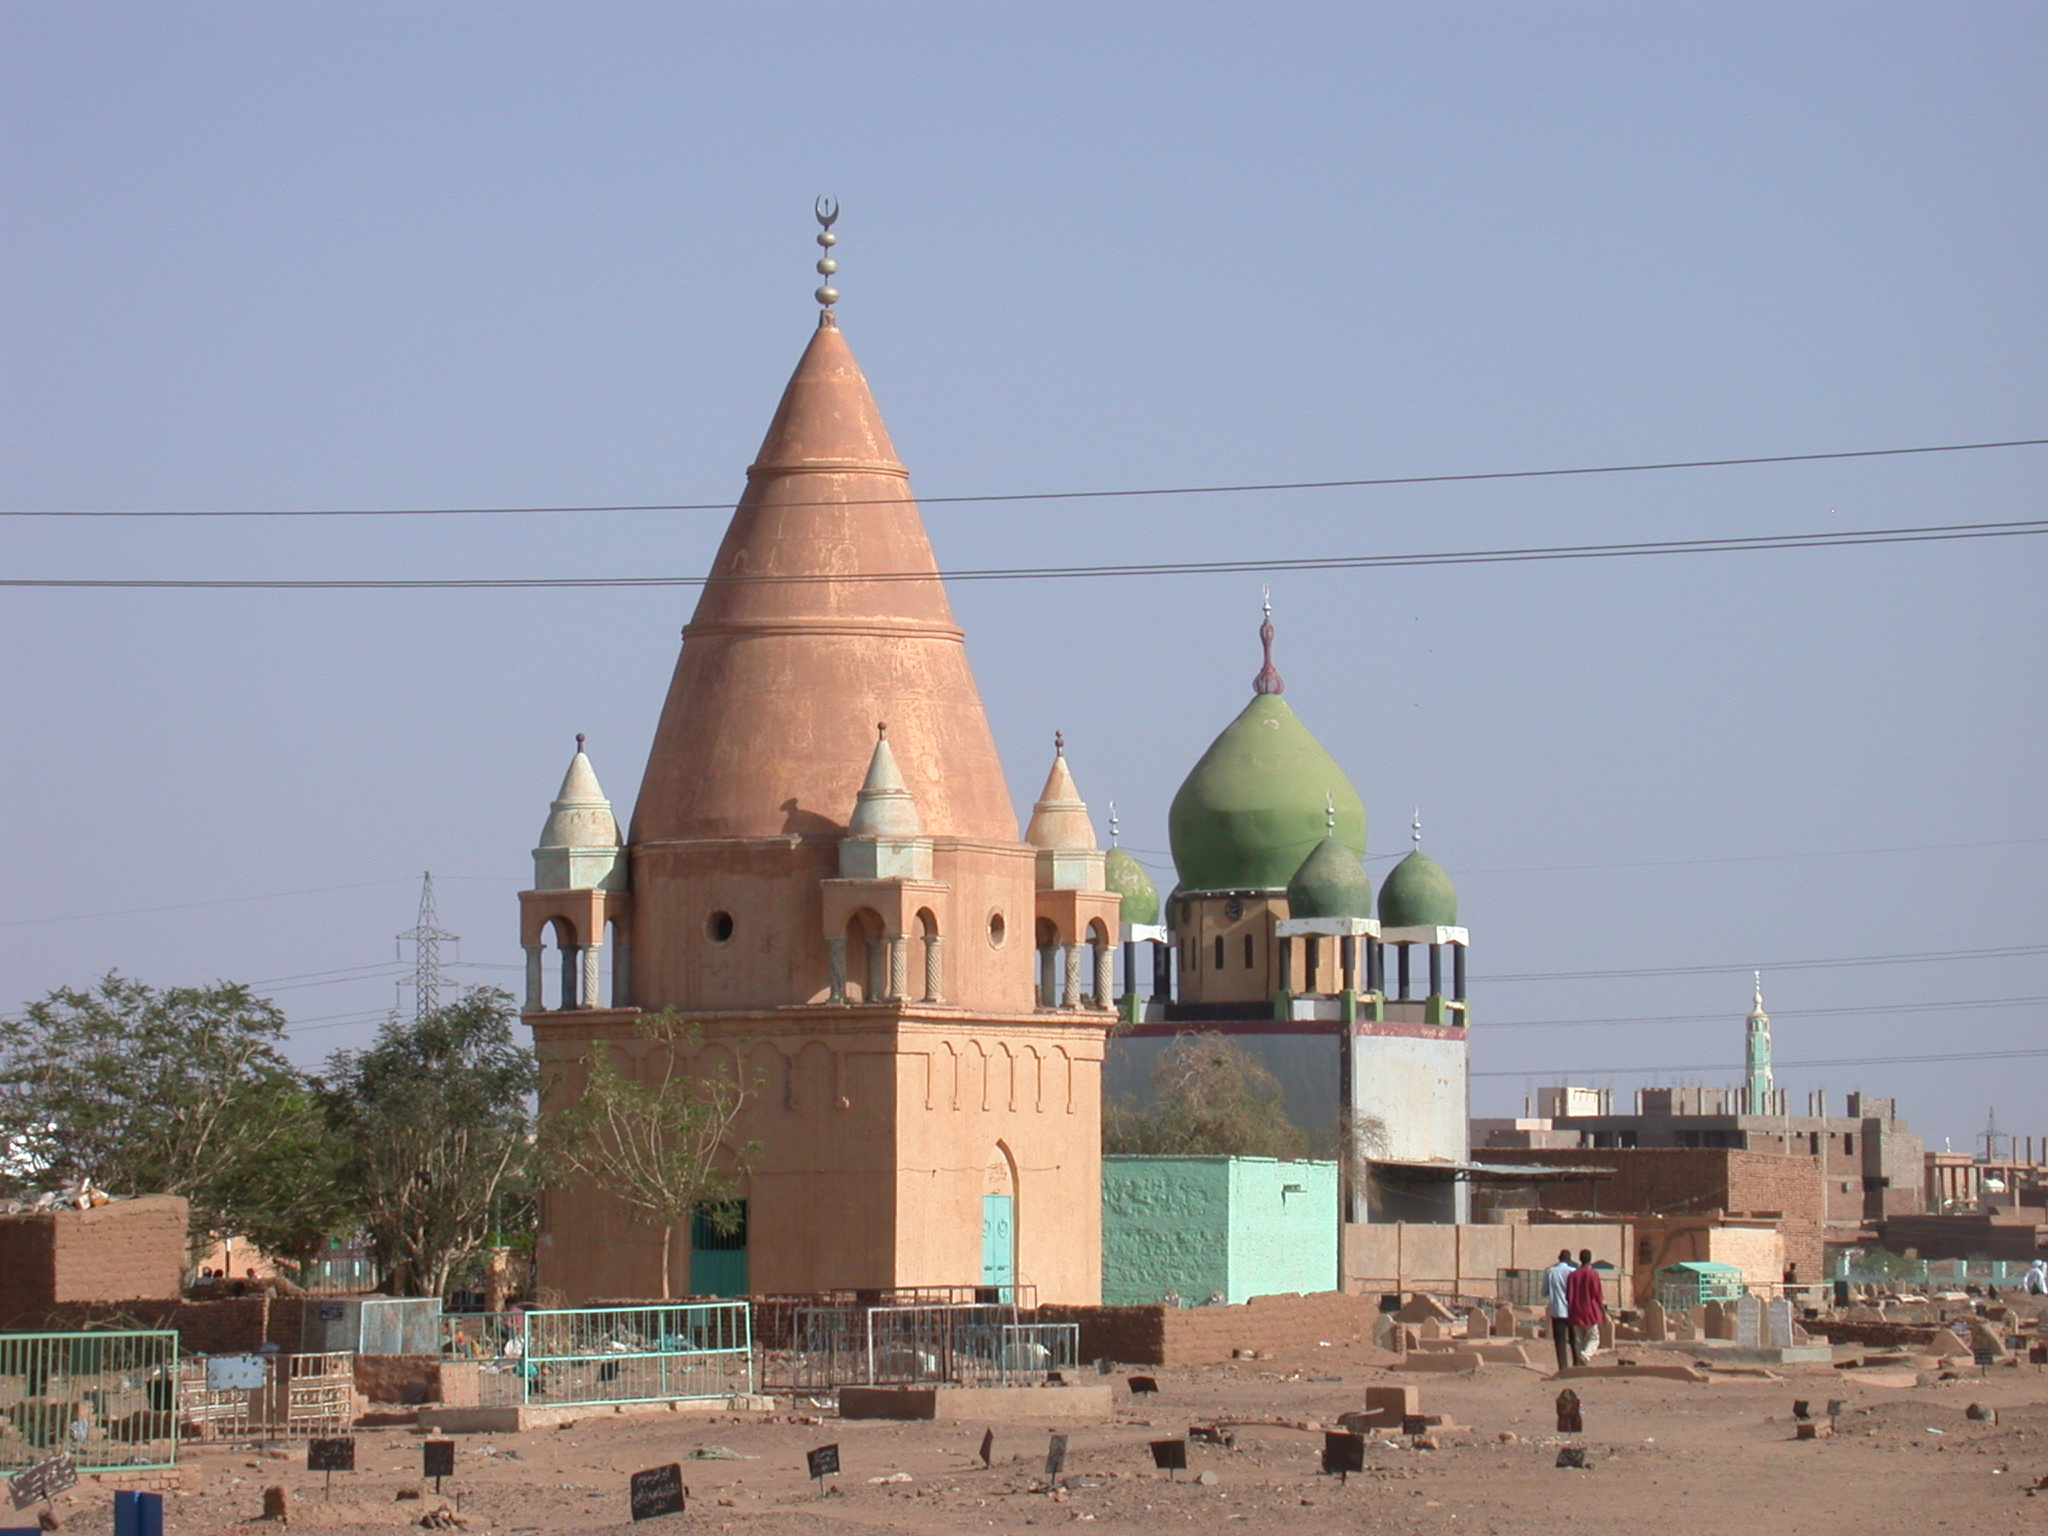 Tombs at Sufi Dancing Site, Omdurman, Sudan